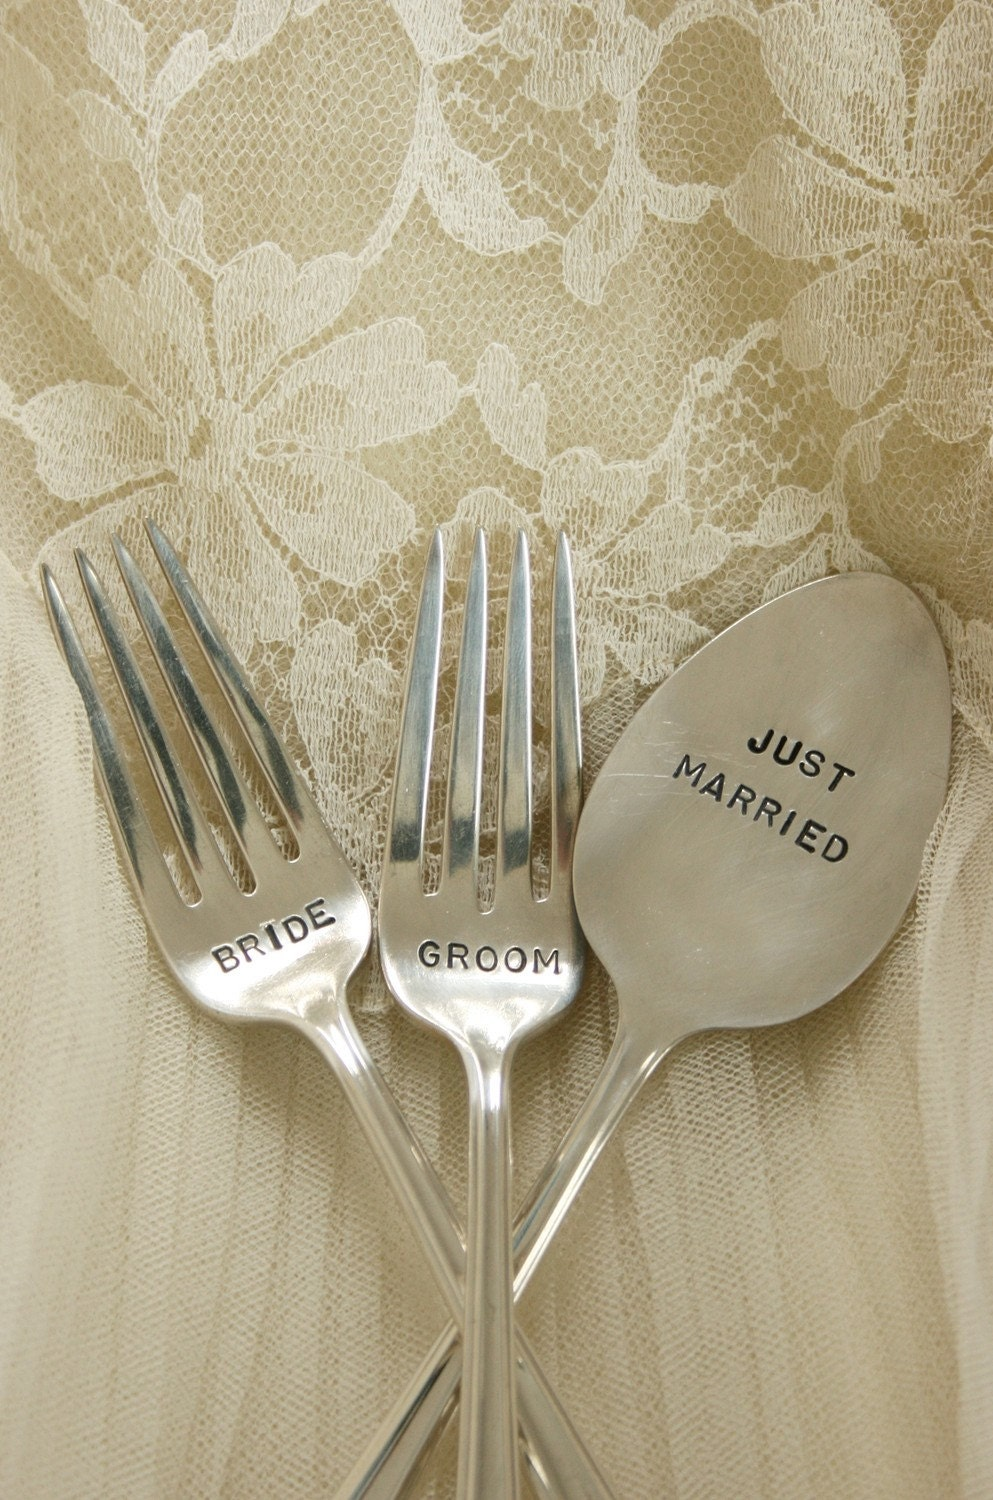 Vintage Bride Groom forks silver plated flatware wedding cake forks with just married cake topper Eternally Yours pattern by beachhouseliving etsy